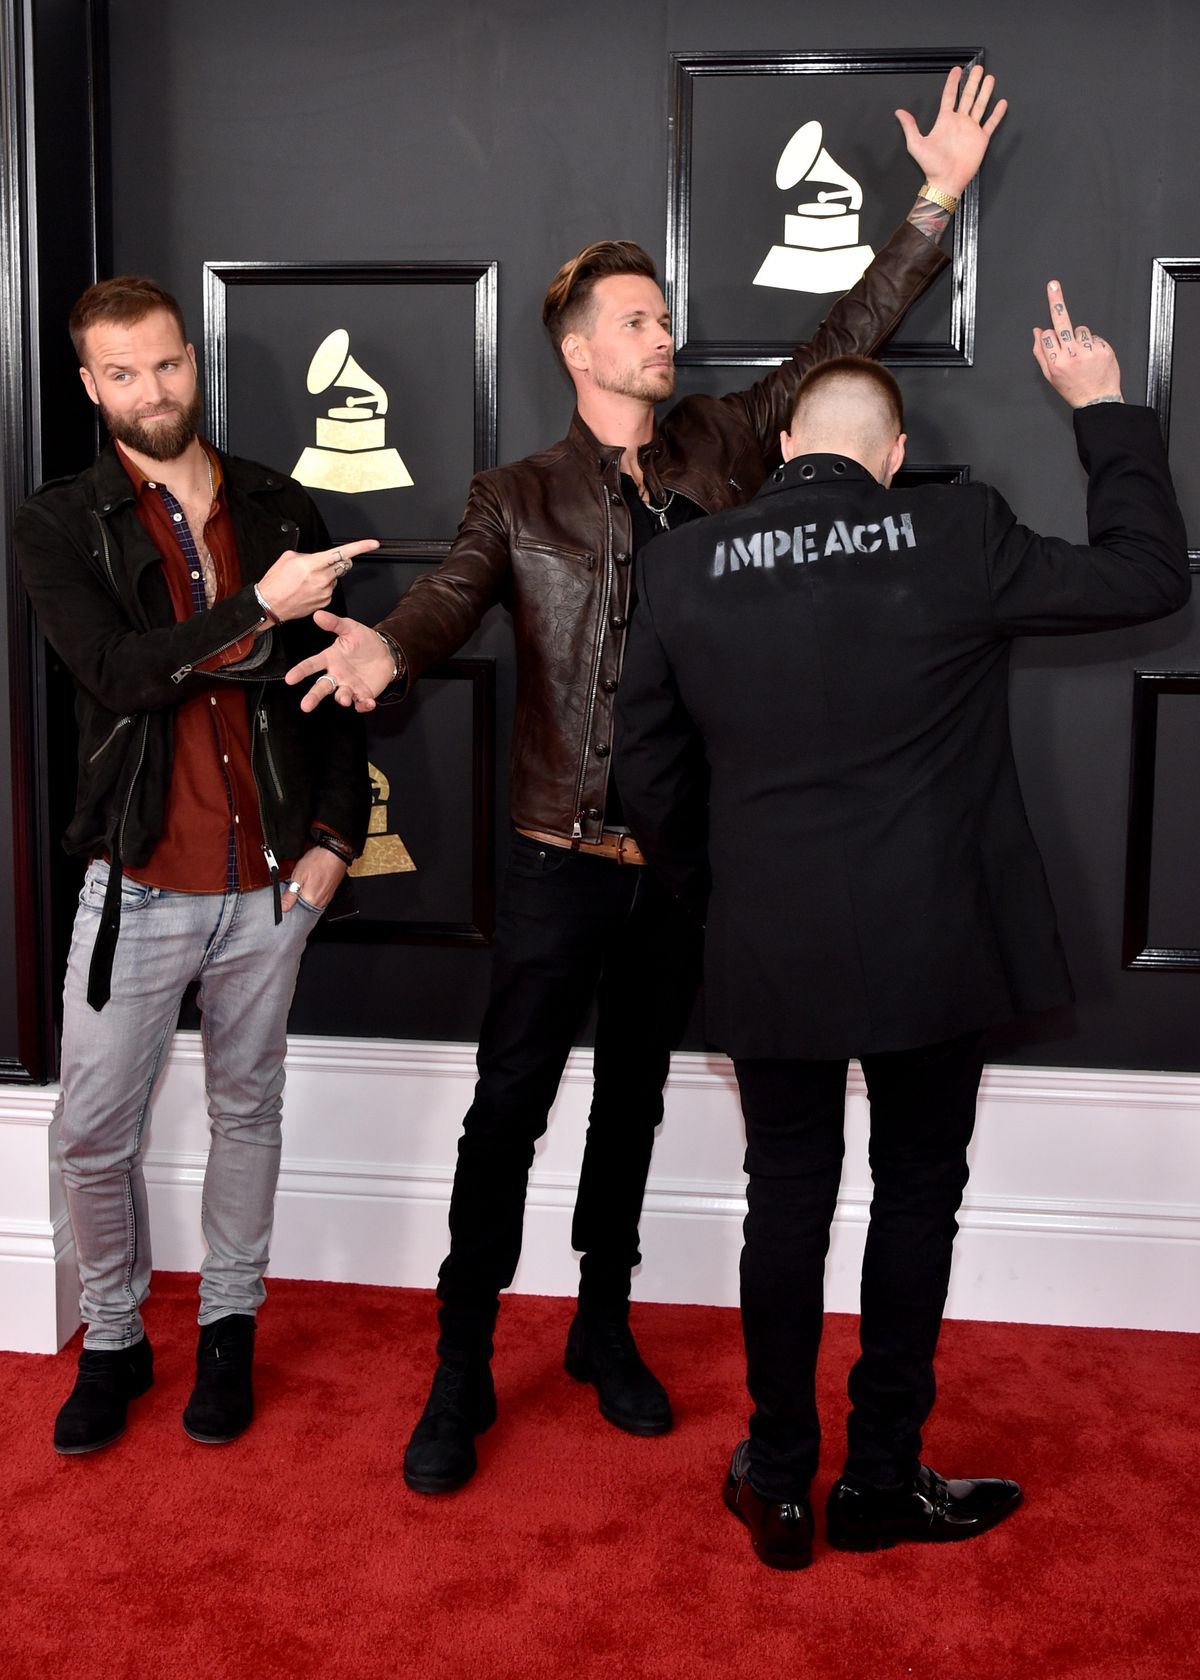 """Highly Suspect's Johnny Stevens in an """"IMPEACH"""" jacket at the 2017 Grammys."""